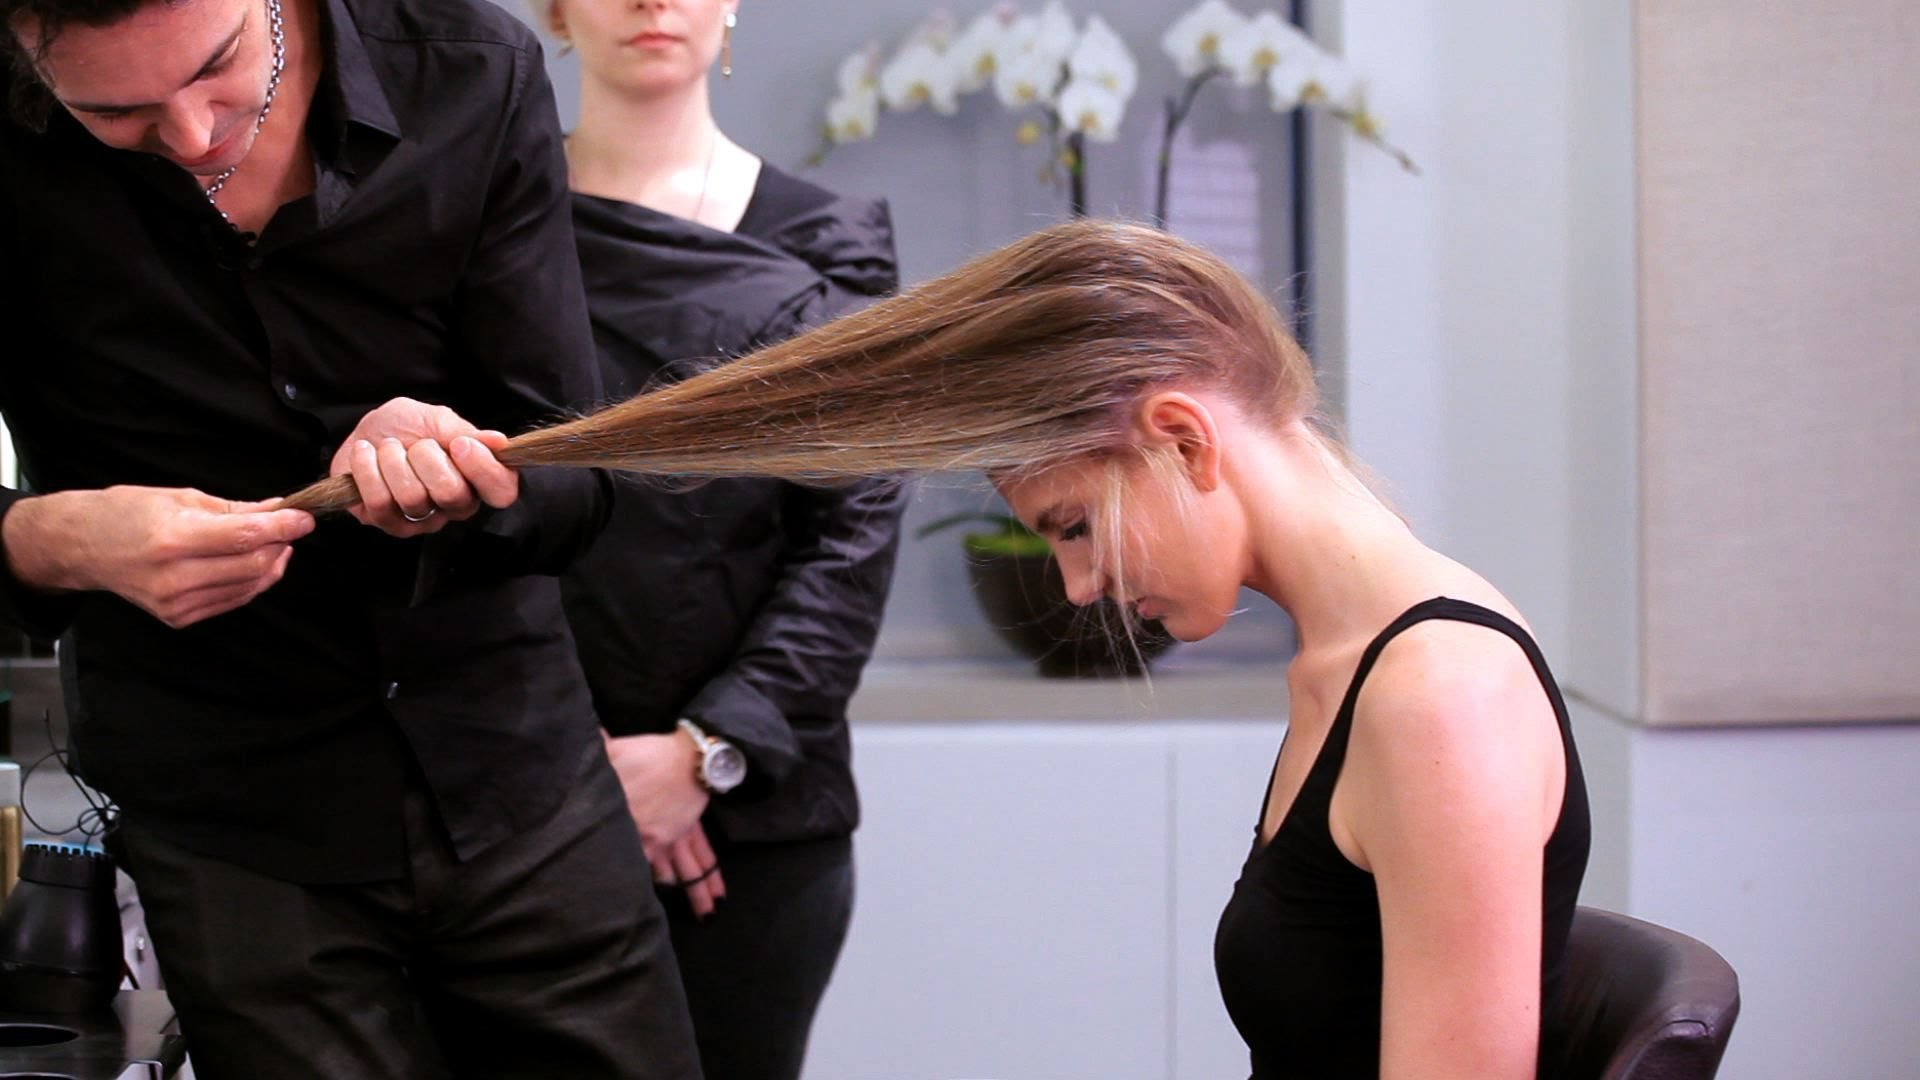 Pleasant How To Make Your Hair Grow Fast Alux Com Short Hairstyles Gunalazisus